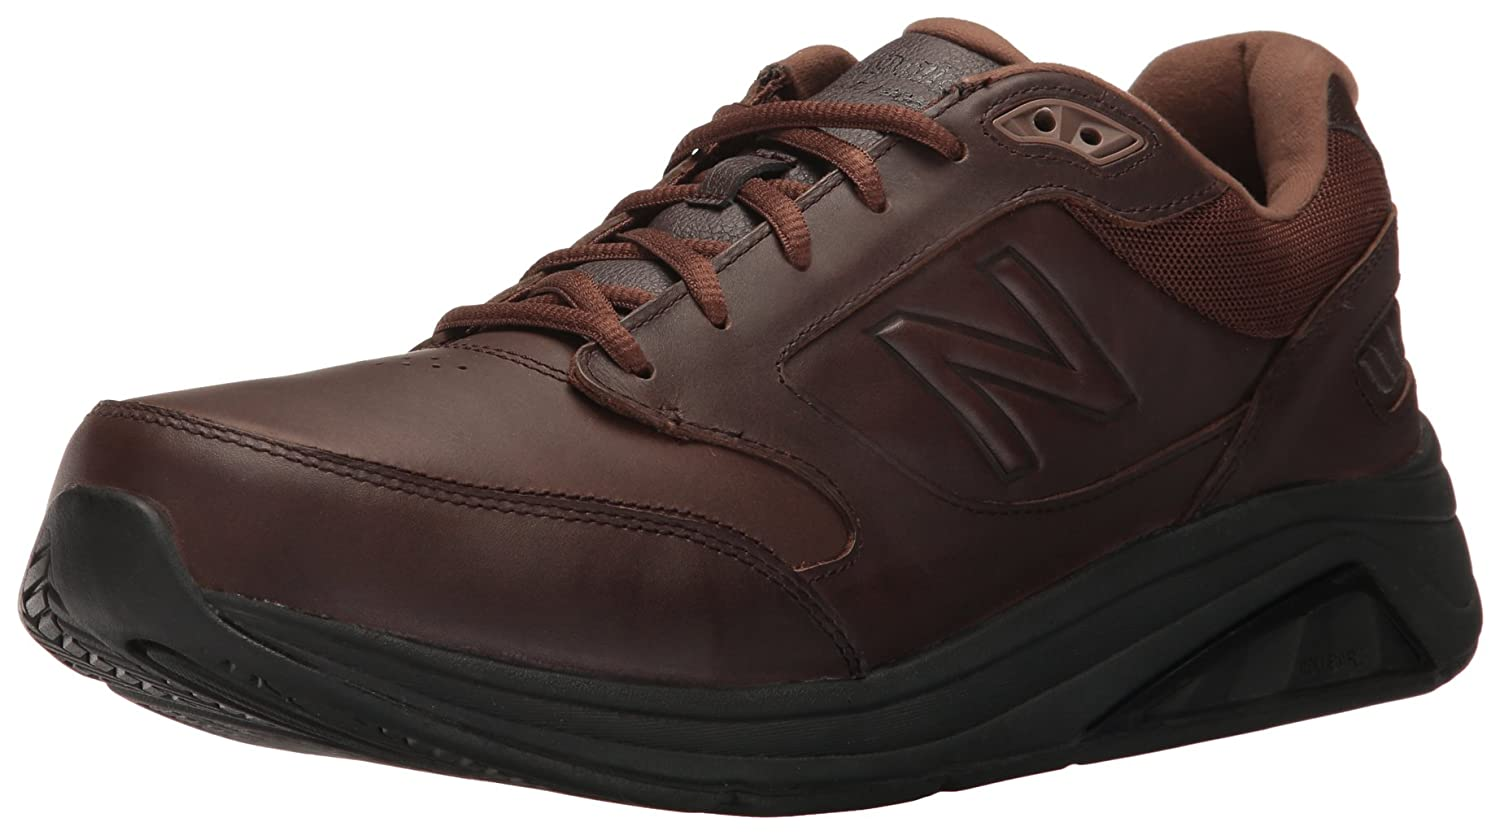 New Balance Men's Mens 928v3 Walking Shoe Walking Shoe 10.5 D(M) US|Brown